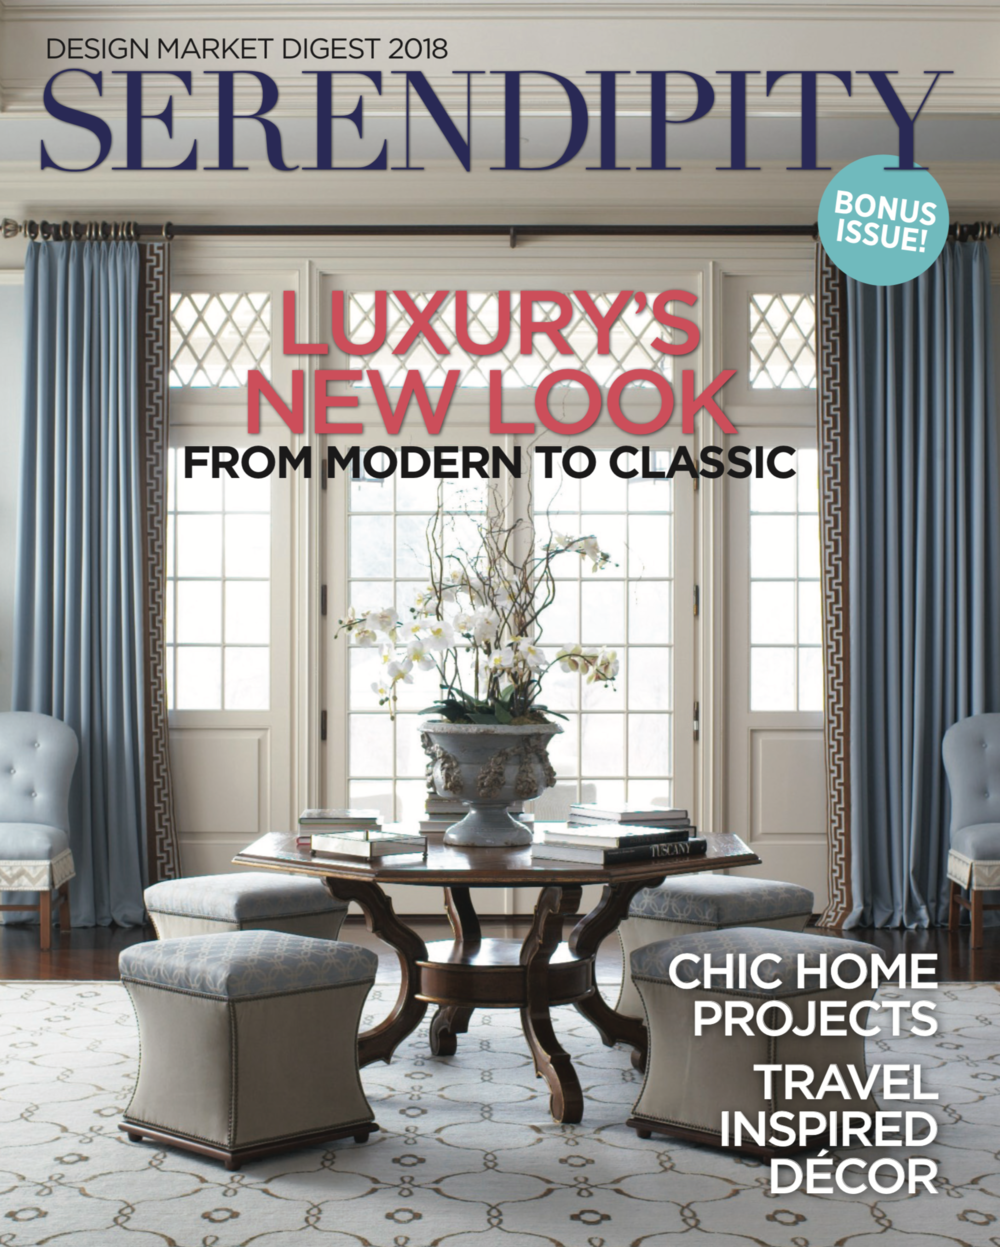 Serendipity Design Market Digest Honor May 2018